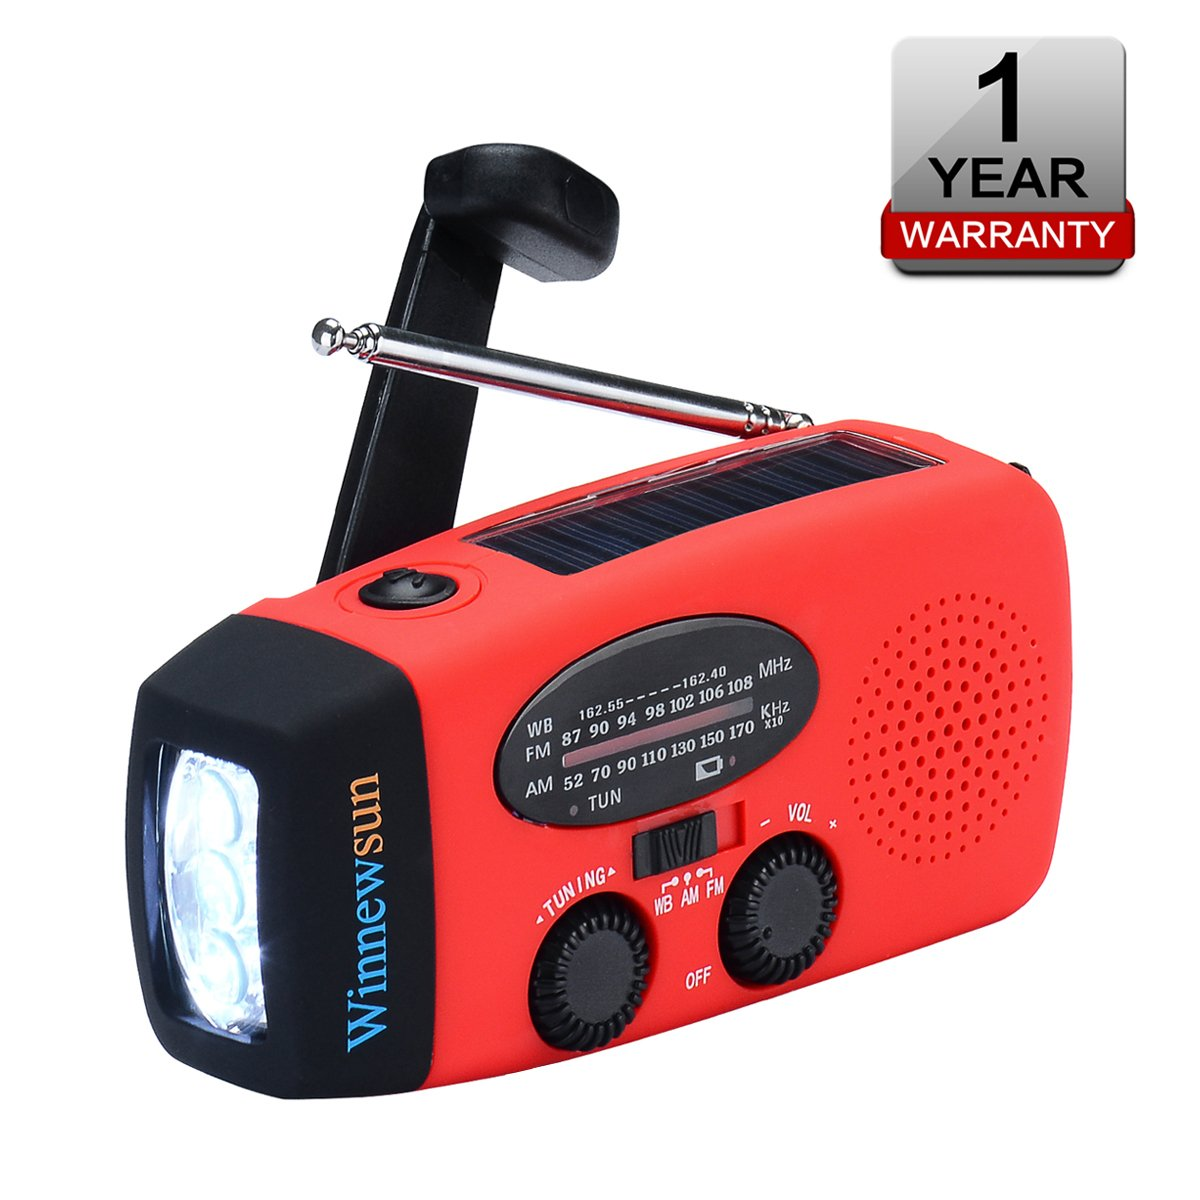 Emergency Radio Weather Radio Solar Crank AM/FM NOAA Radio 1000mAh Power Bank LED Flashlight USB Cell Phone Charger Outdoor Survival Household Emergency